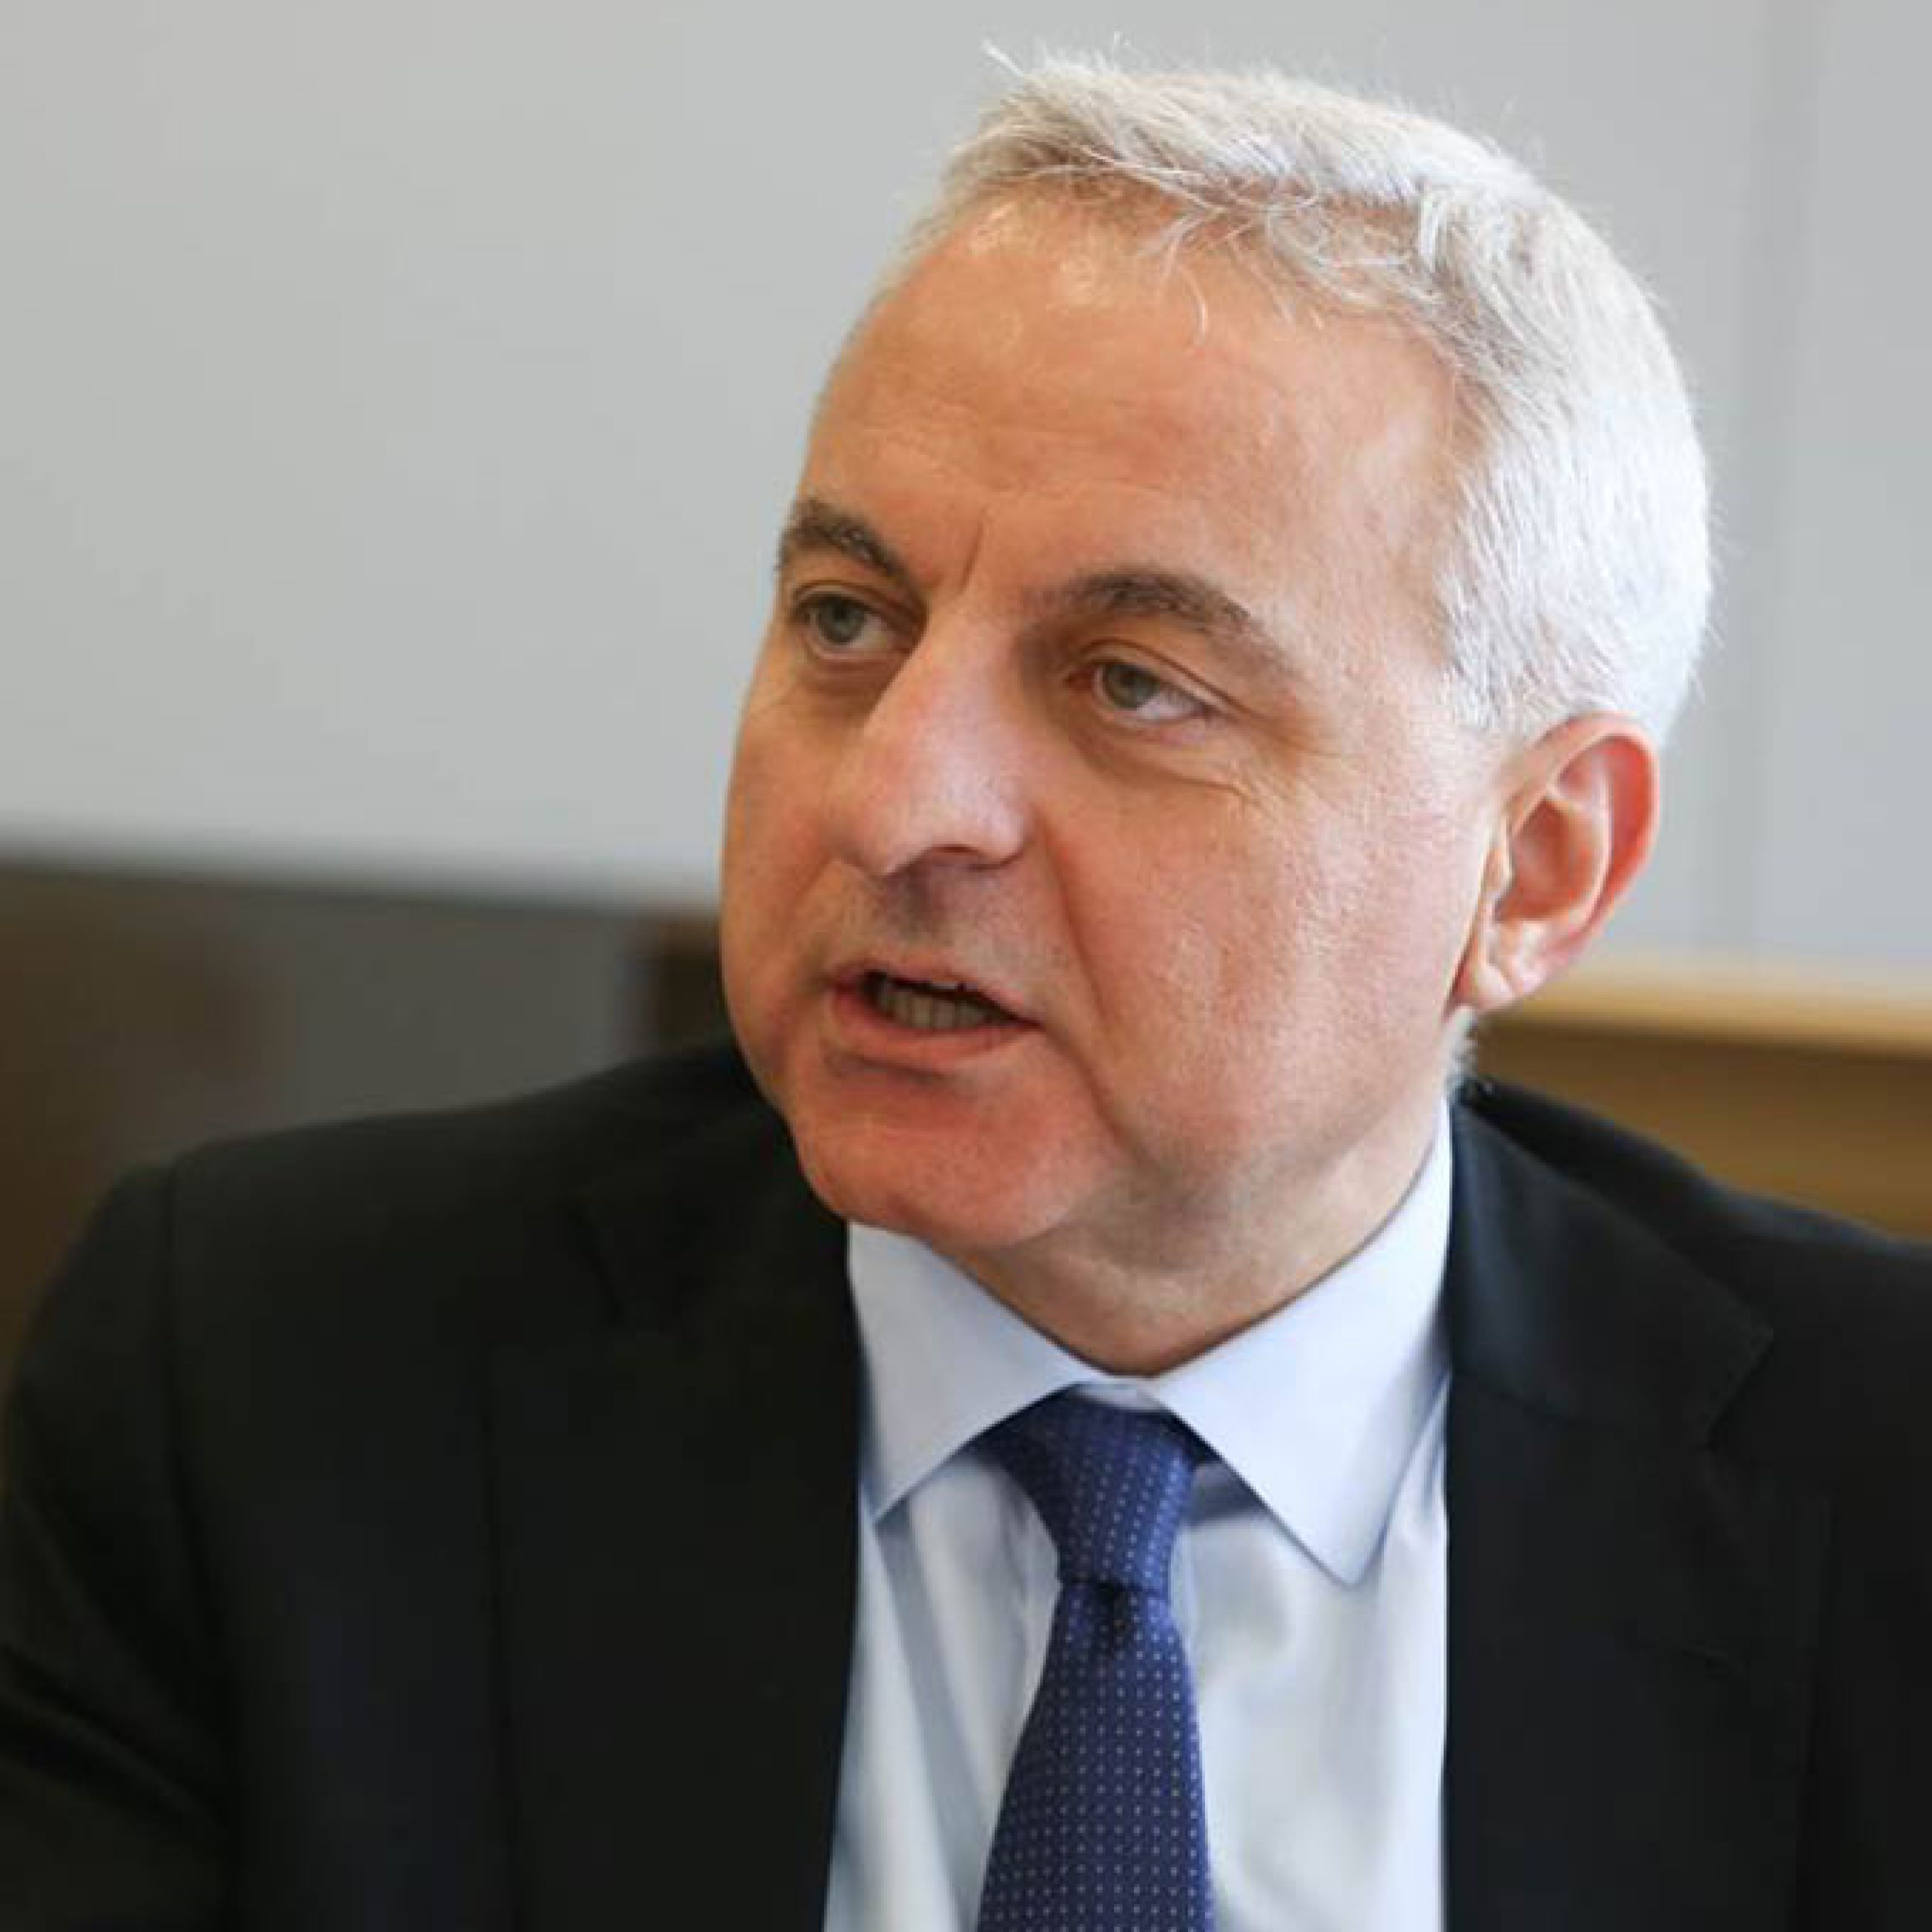 Tufan Erginbilgic, chief executive, Downstream